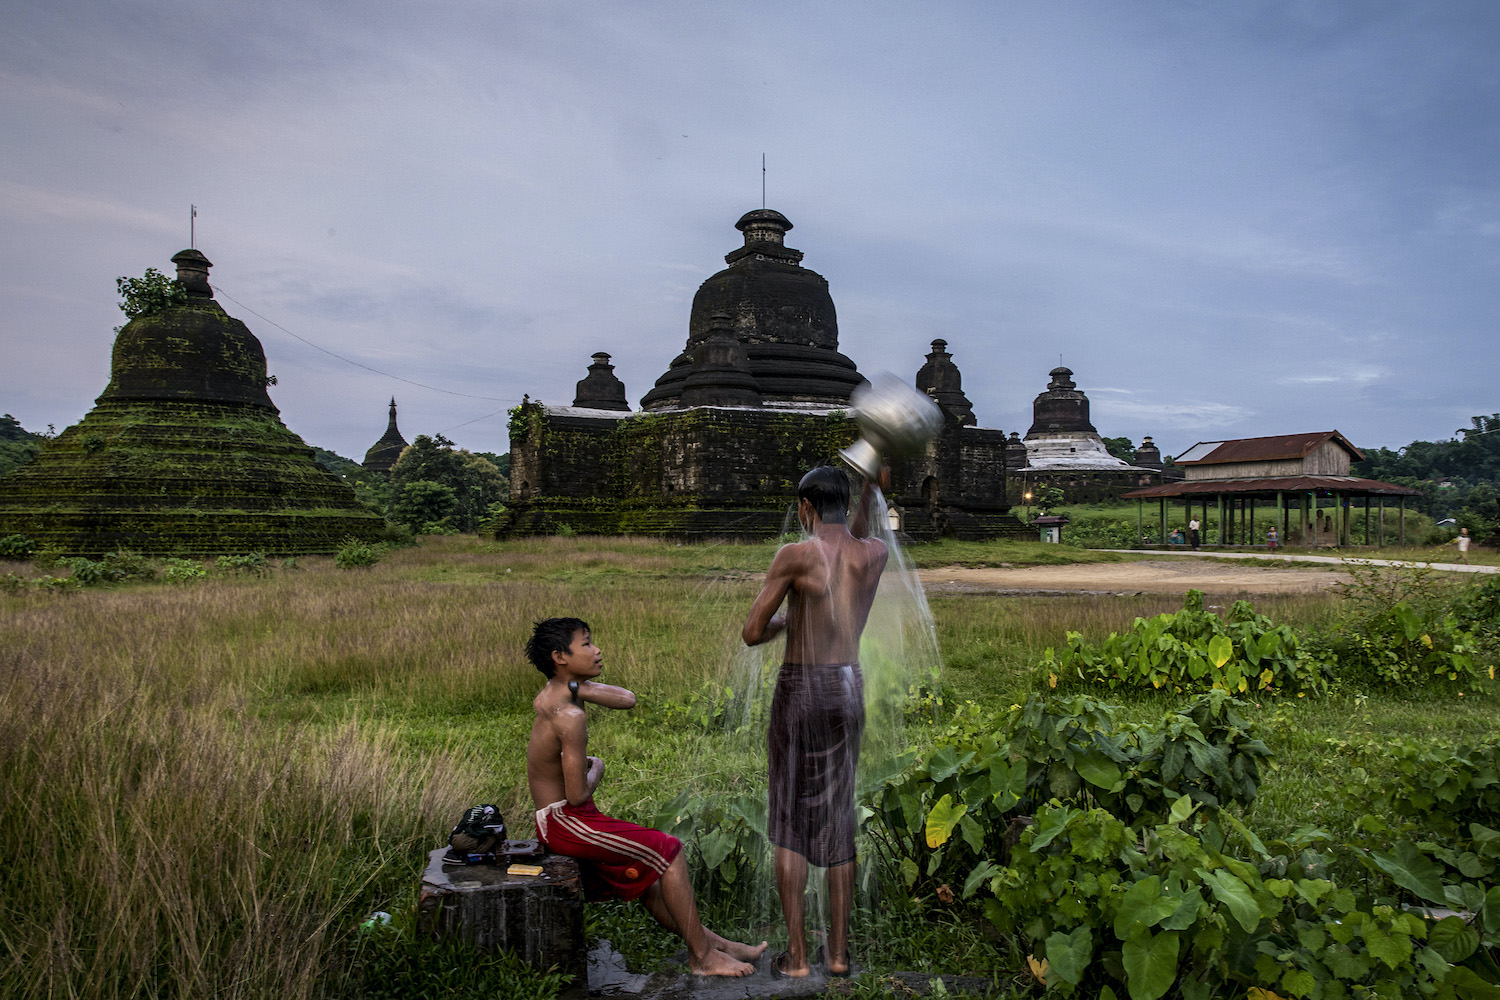 Children shower near a pagoda in Mrauk-U, Rakhine State on 21 August 2020. (Hkun Lat I Frontier)